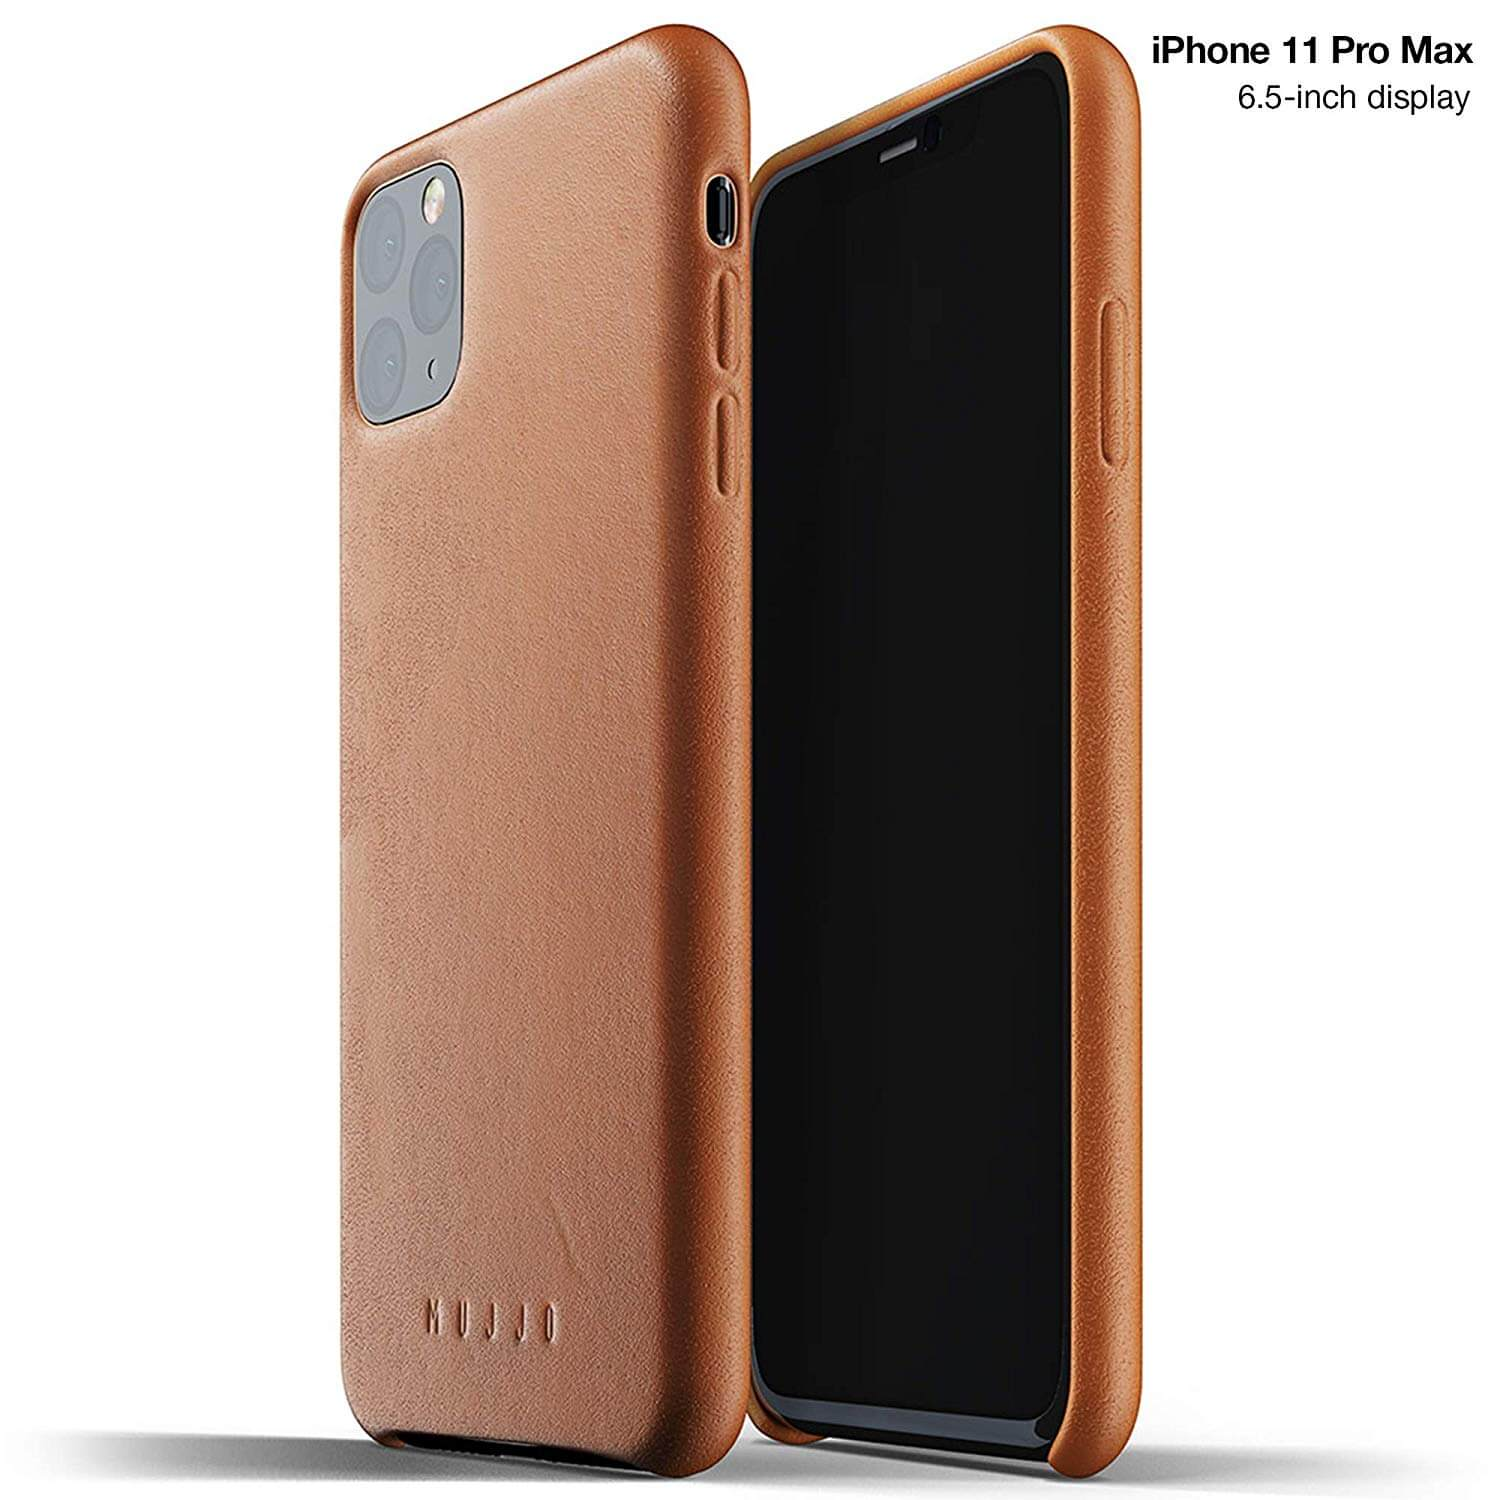 Mujjo Full Leather Case for iPhone 11 Pro Max (brown)